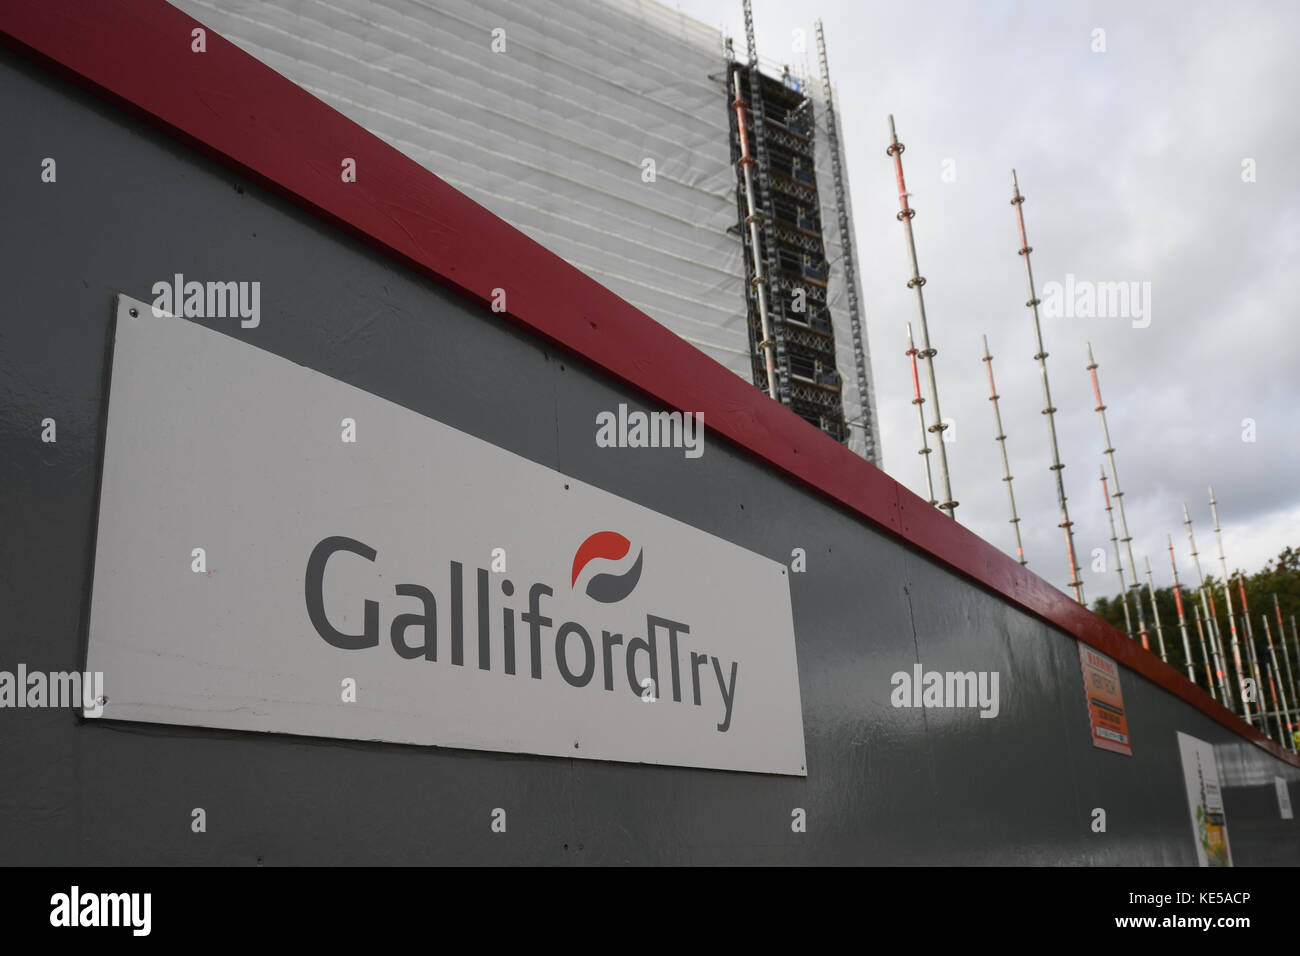 National Regional property group and Gallifordtry building work in Southampton city centre. - Stock Image